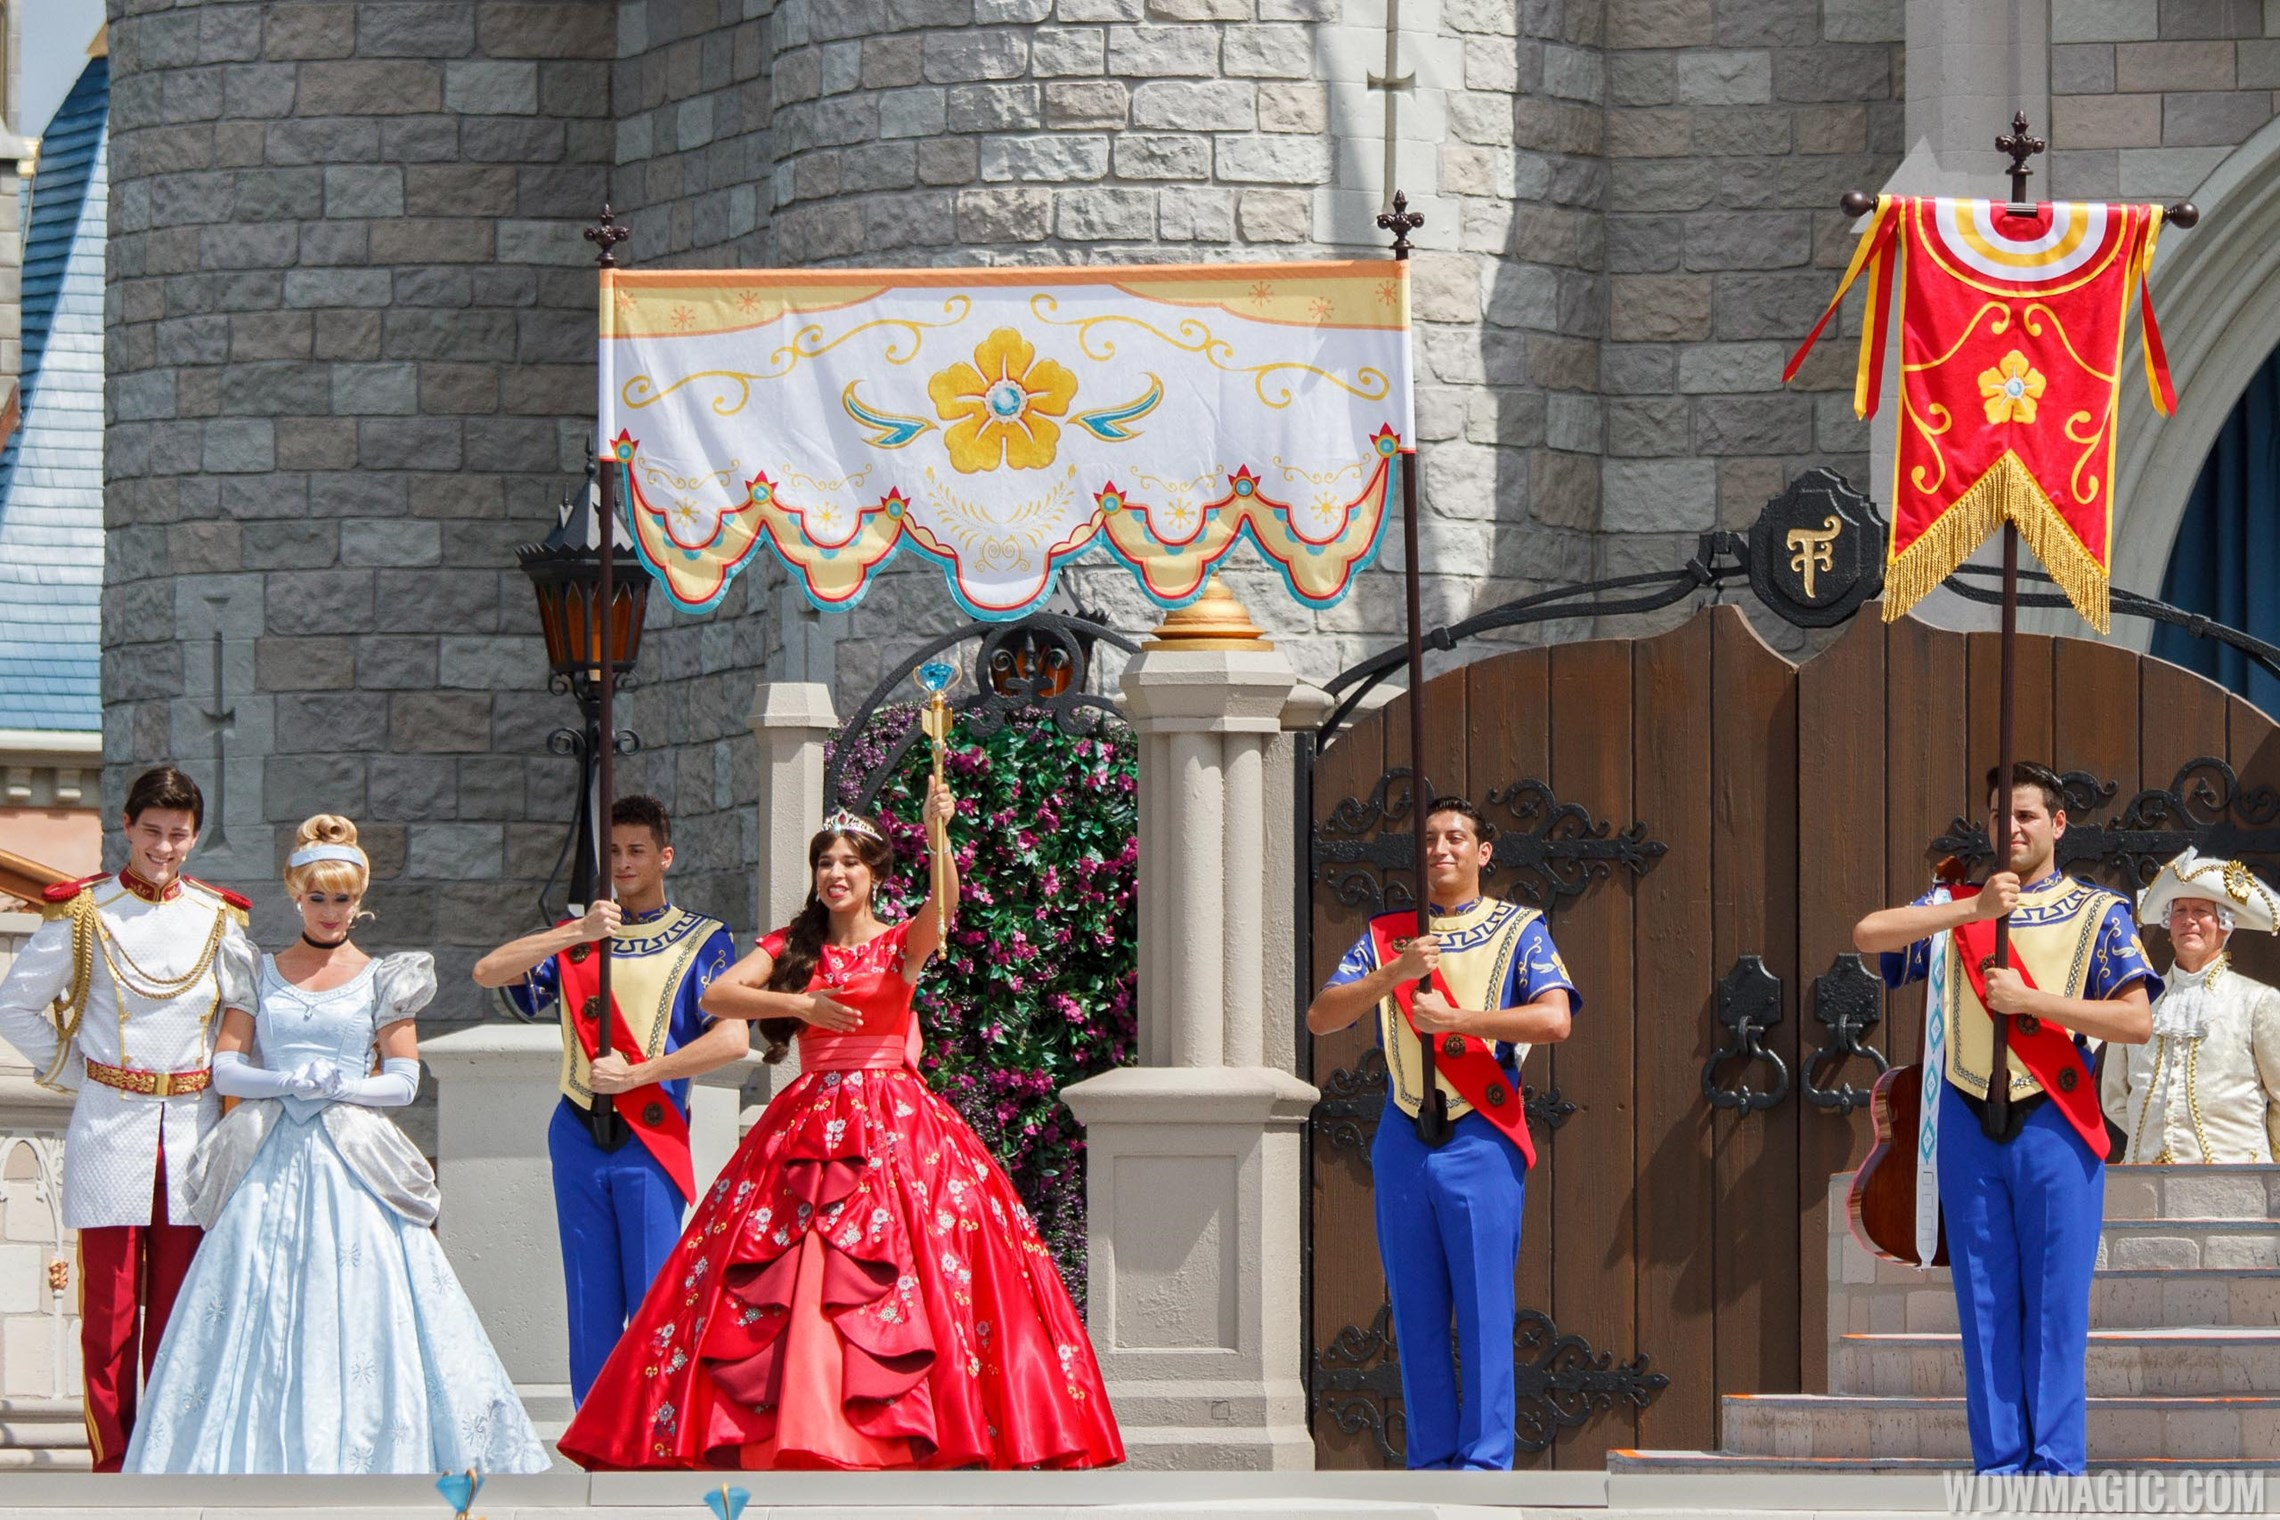 The Royal Welcome of Princess Elena of Avalor